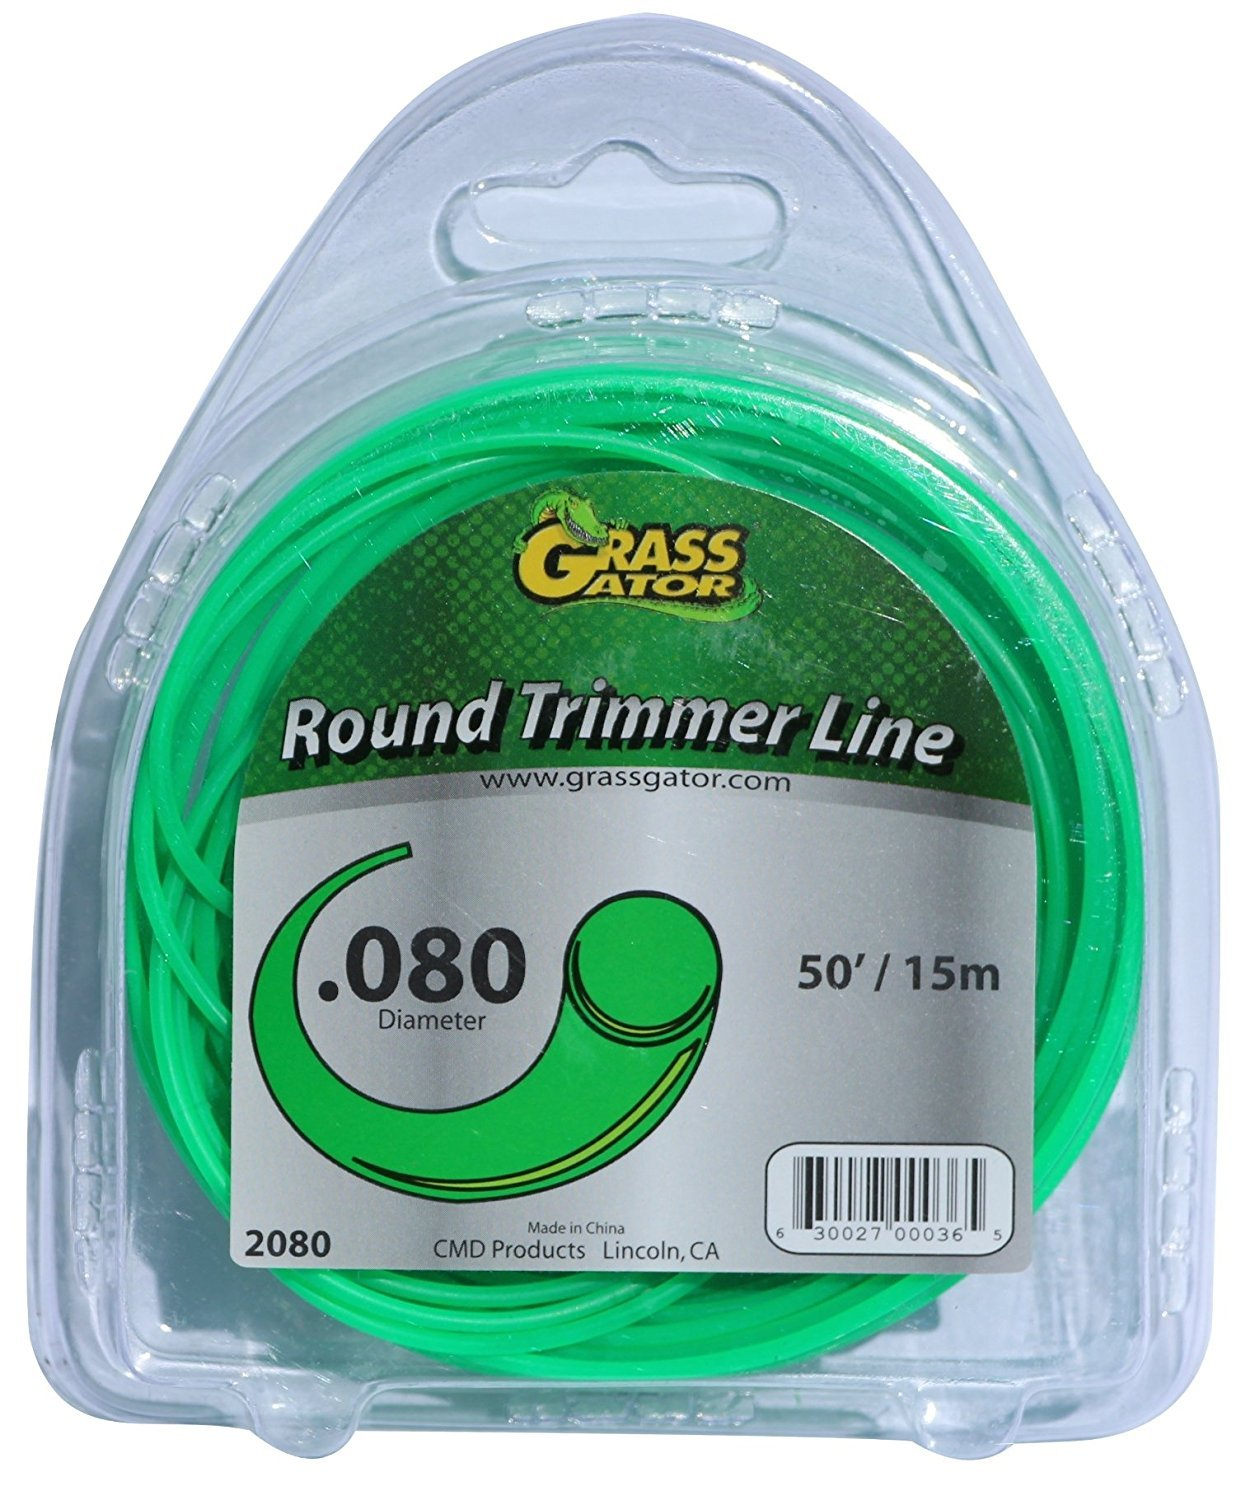 AAAmercantile 6 Pack 0.08 inch trimmer string line round weed eater 80mil (190 feet) Gator